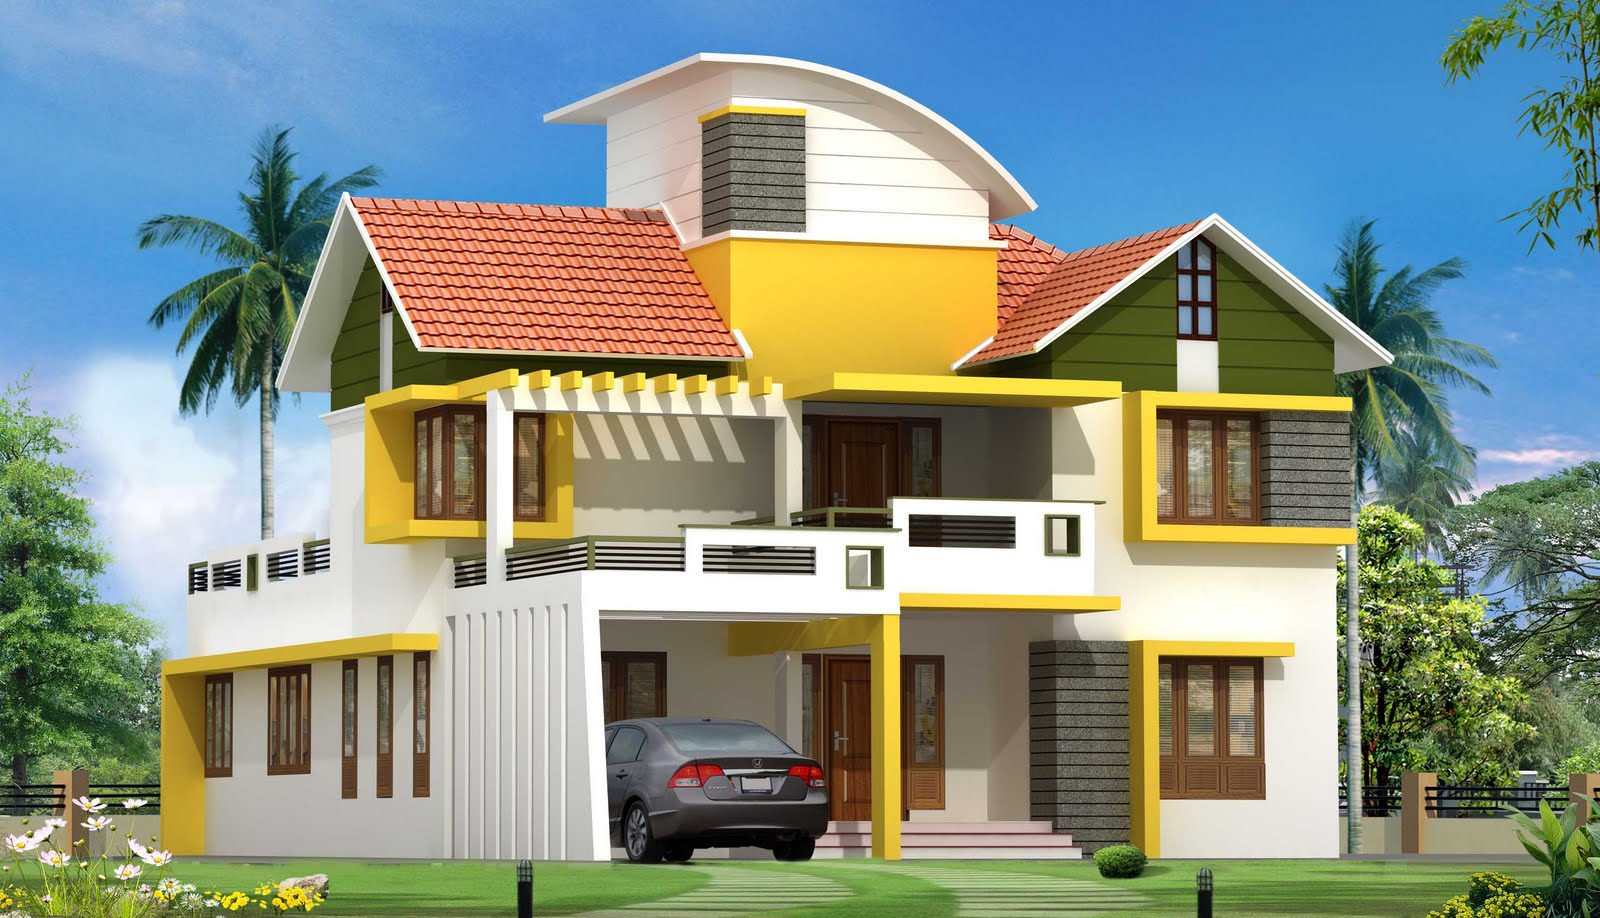 Here Is Floor Plan Of Beautiful Modern Kerala Home Design From Shukoor